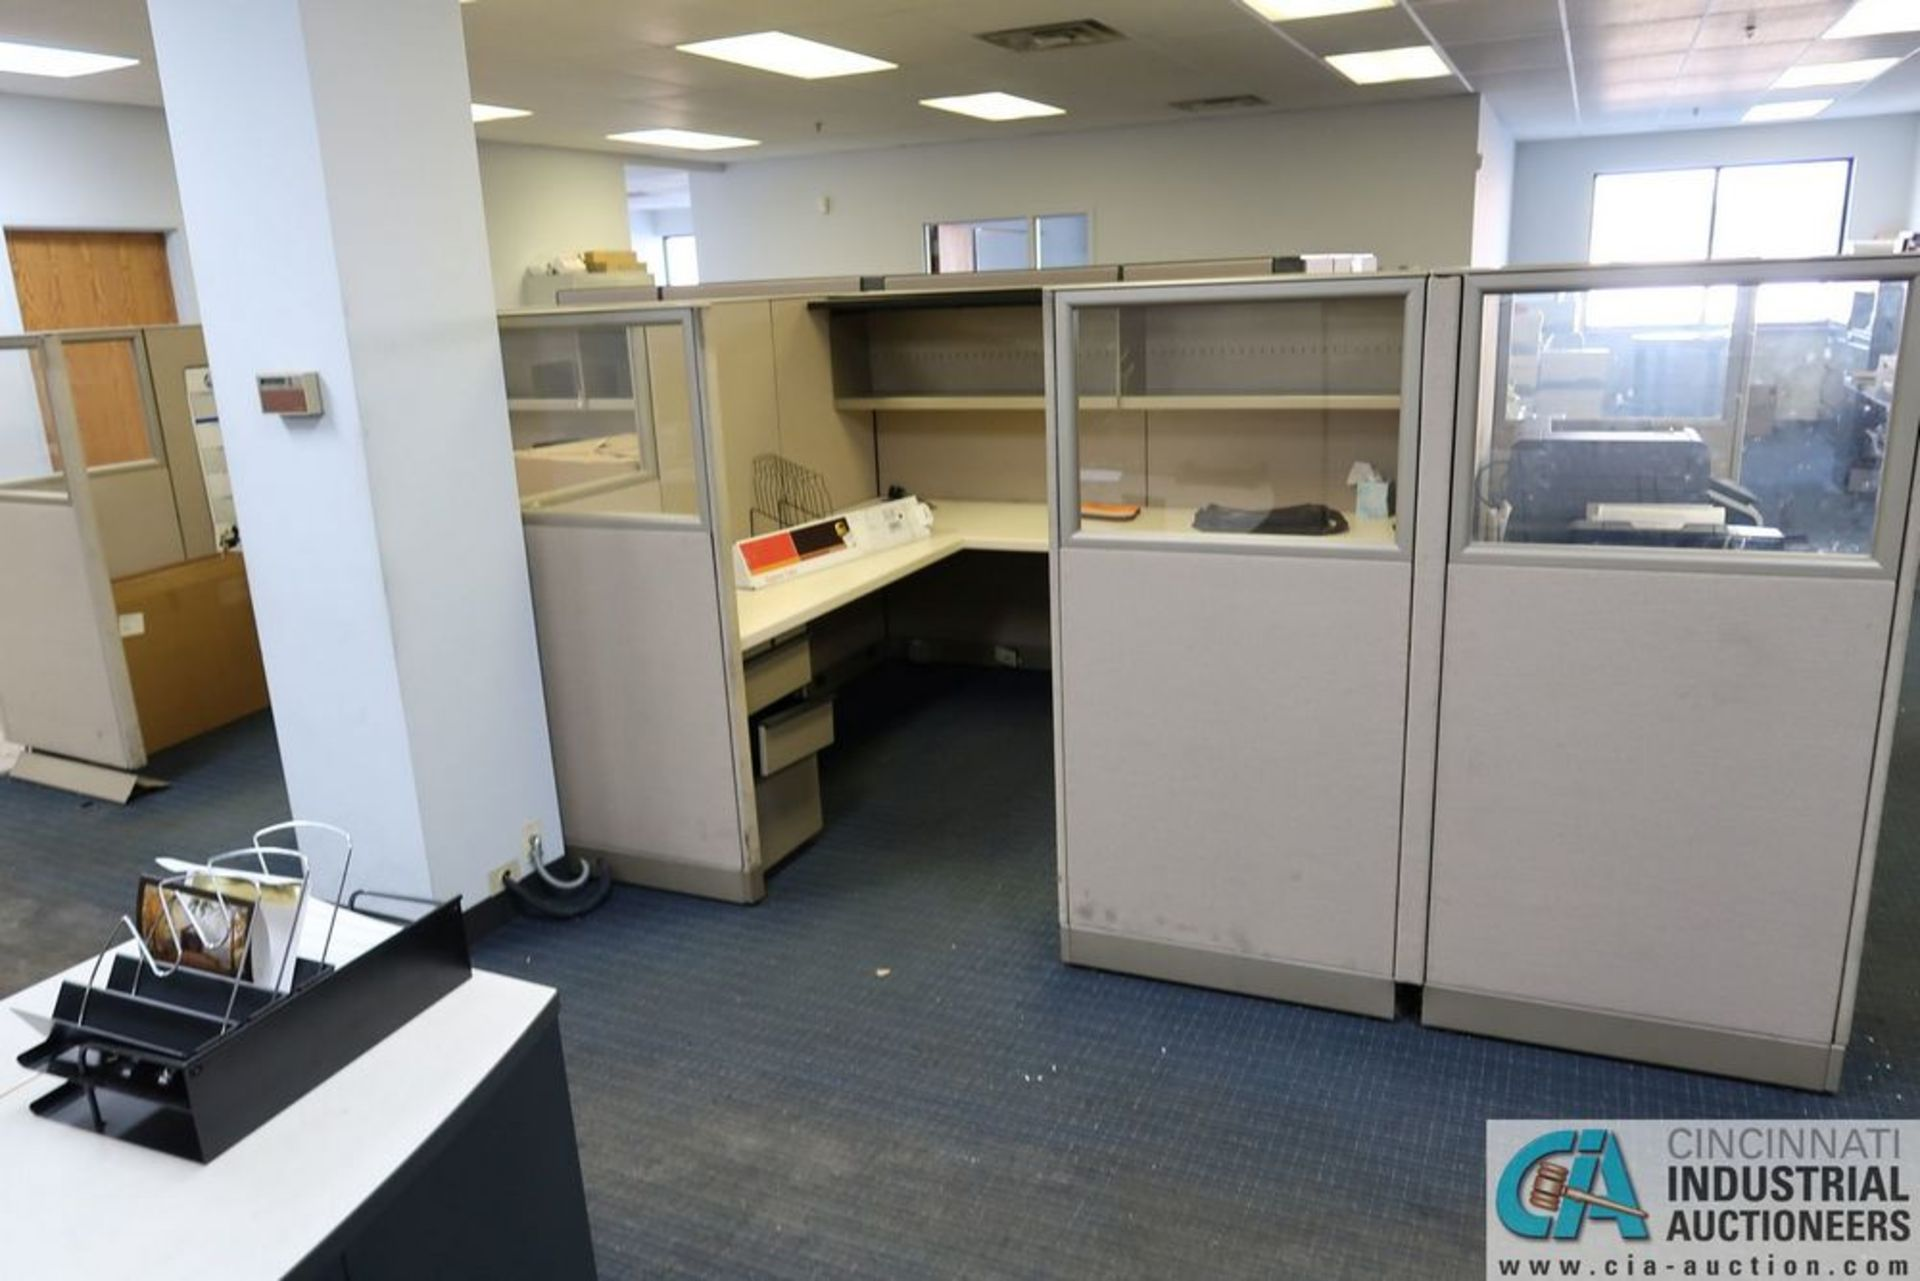 "(LOT) OFFICE CUBICLES, (2) 72"" X 72"", (2) 100"" X 92"", (2) 112"" X 96"", (1) 216"" X 72"" - Image 5 of 10"